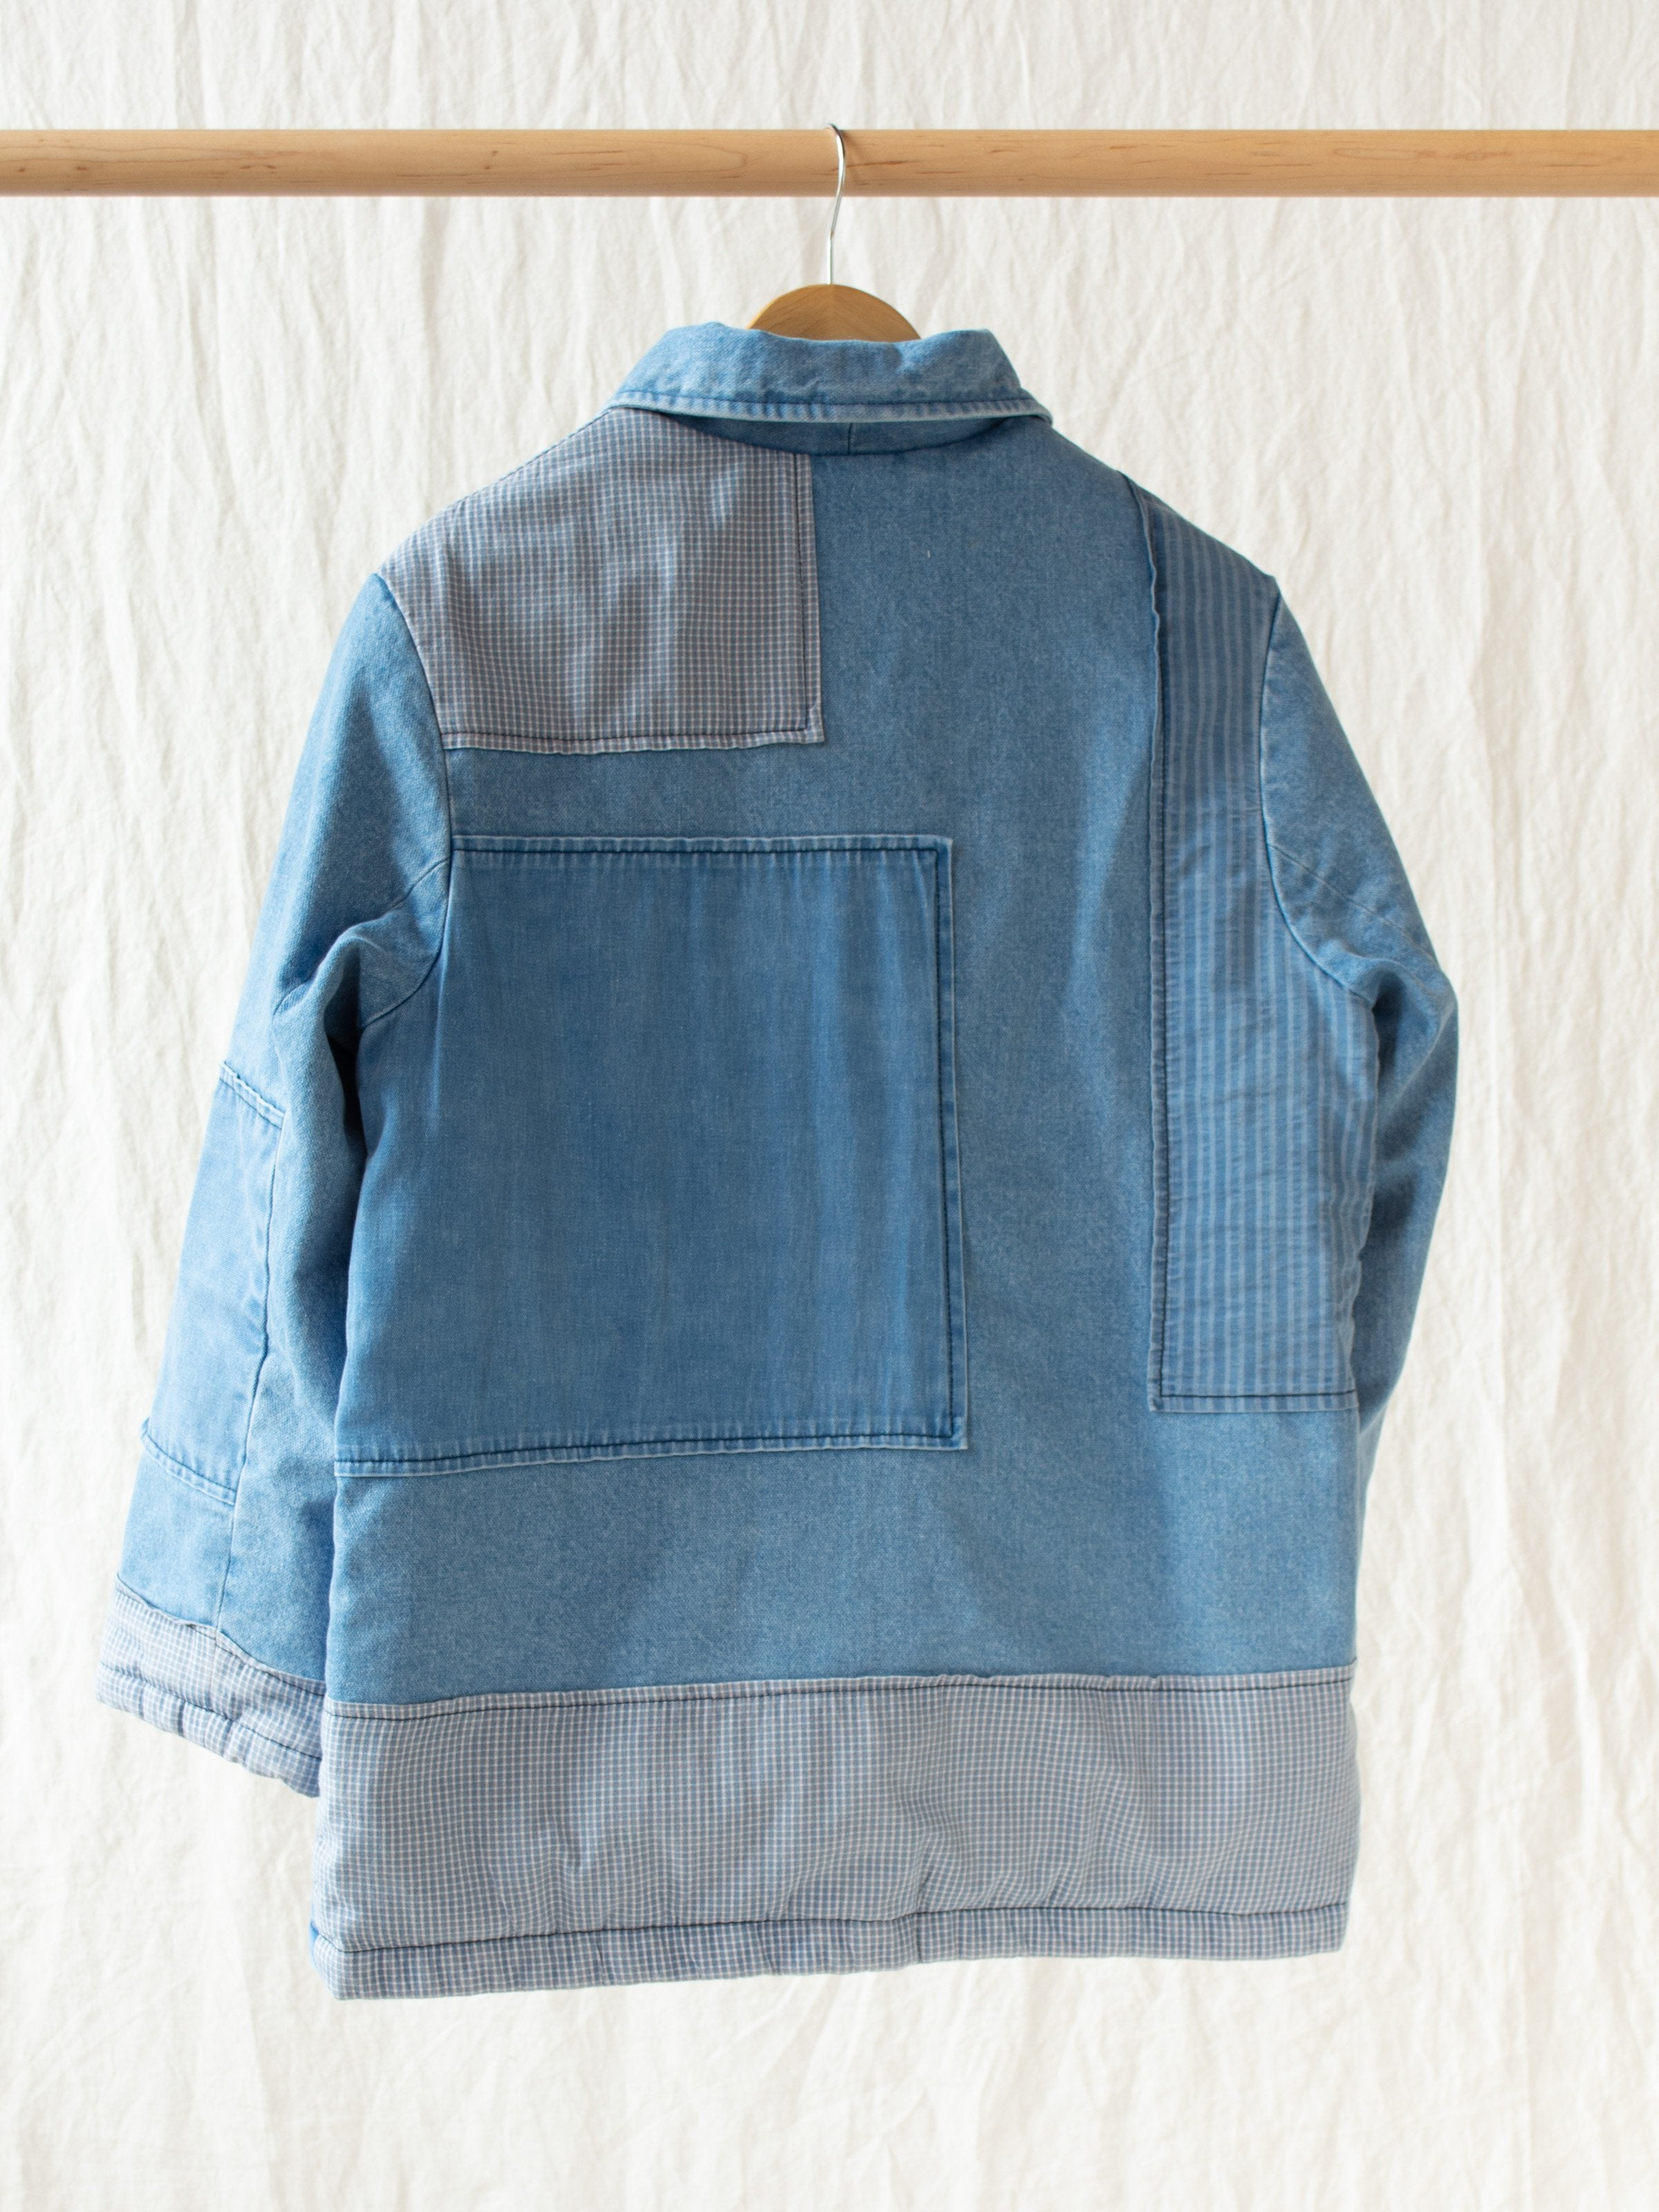 Namu Shop - Caron Callahan Paddington Jacket - Blue Denim Patchwork